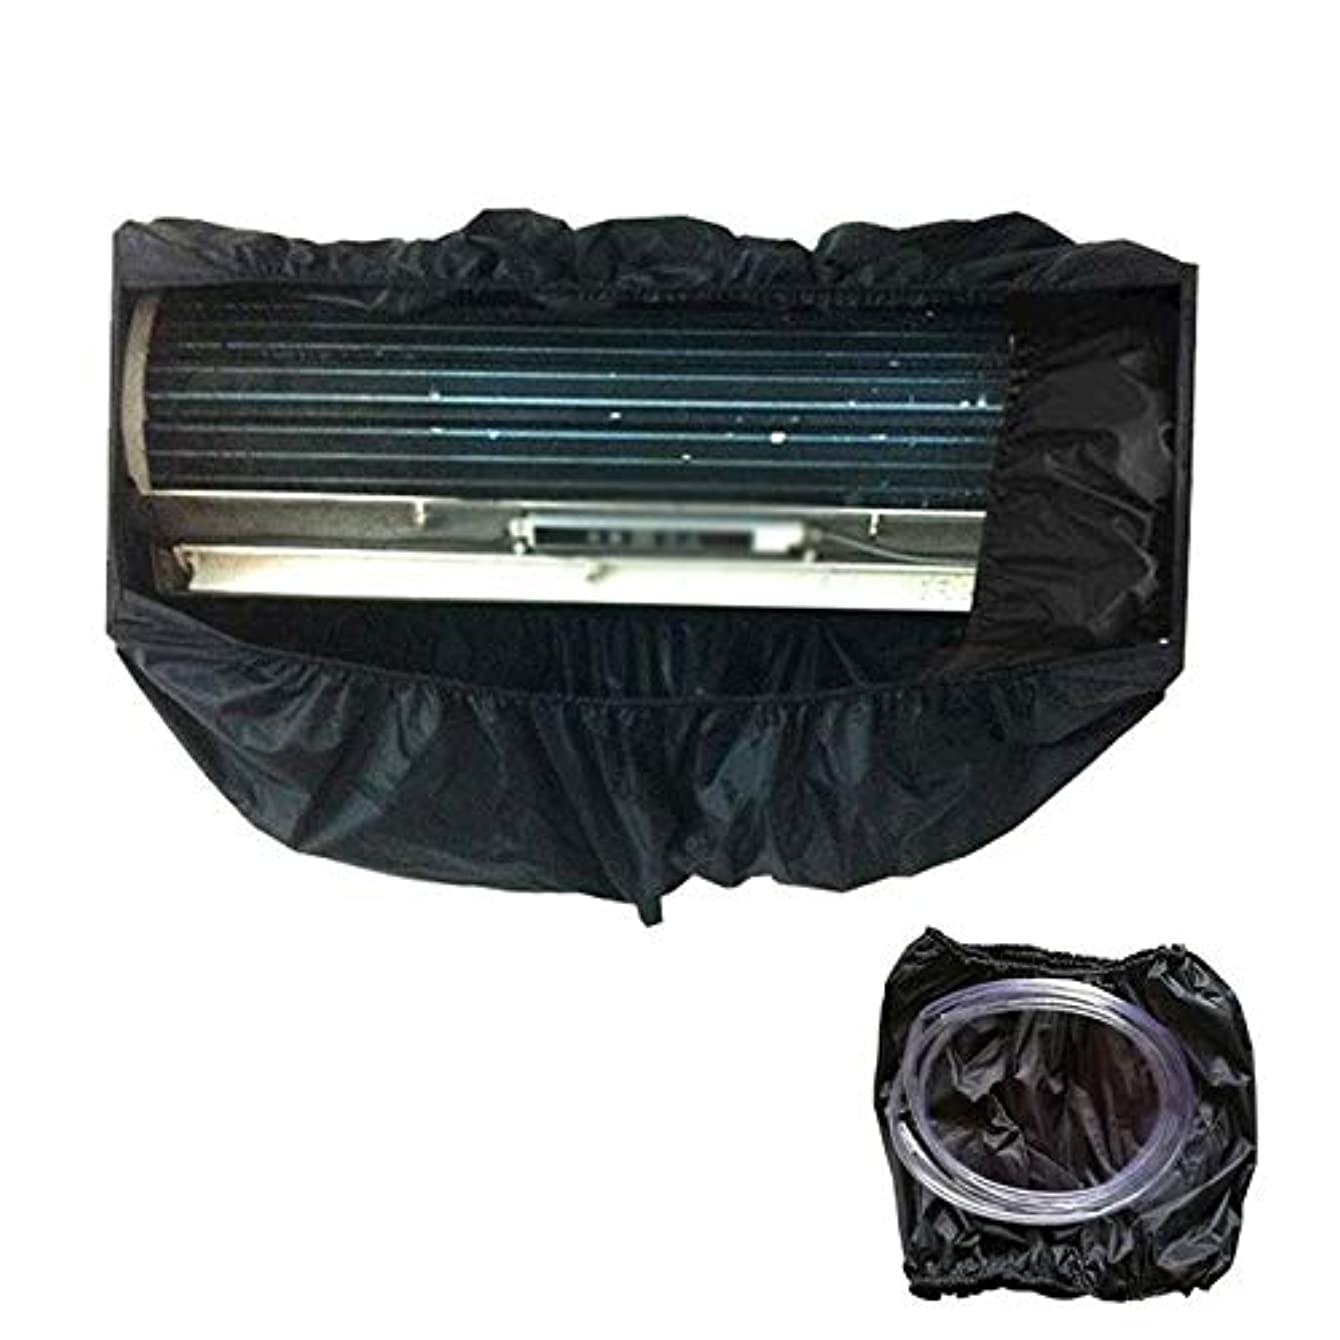 Yichener Black Air Conditioning Cleaning Bag Split Room Wall Mounted Air Conditioner Washing Cover for Air Conditioner